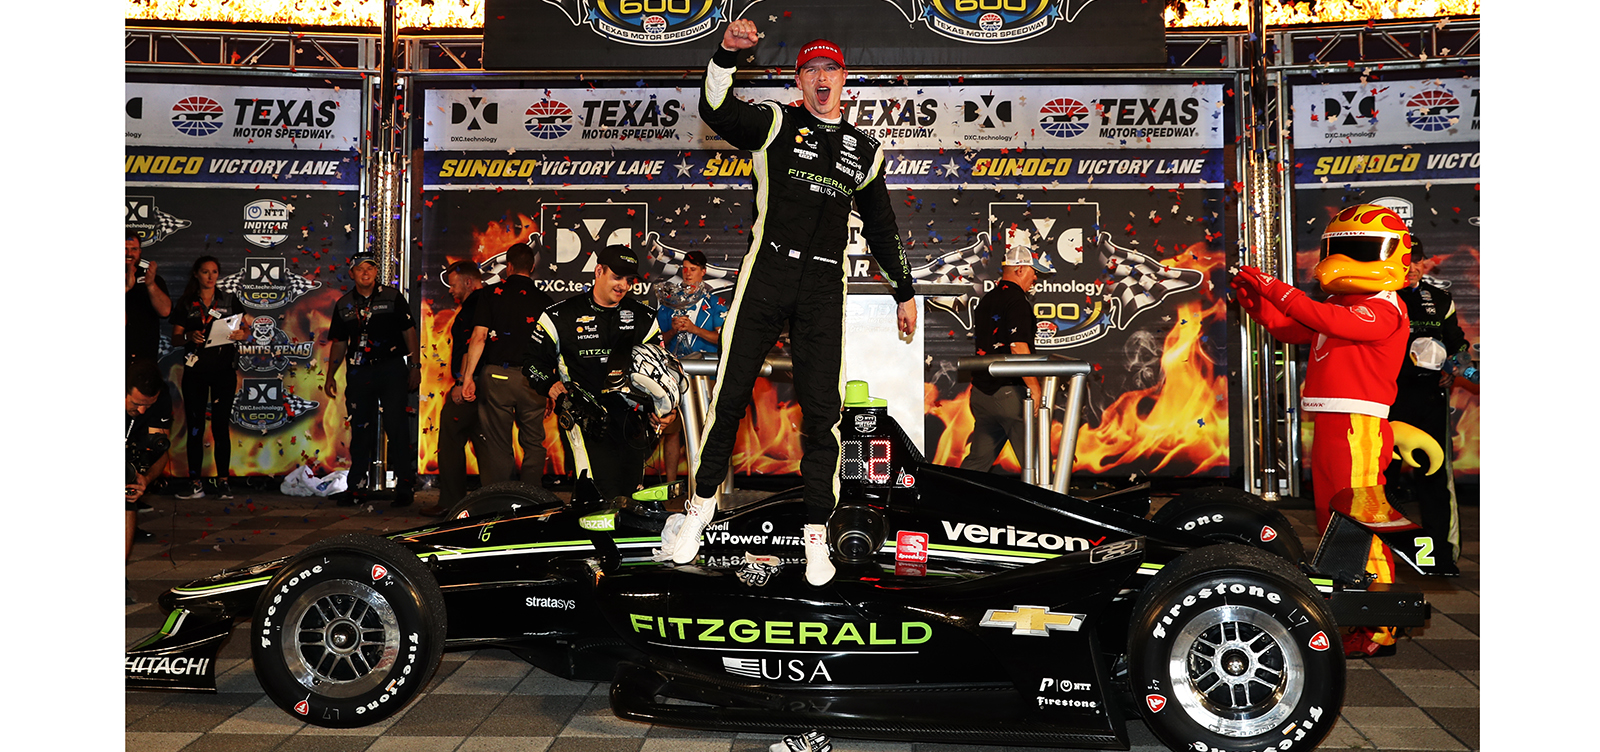 Banc A Charge Guidee Newgarden Makes Late Charge To Win In Texas Acura Grand Prix Of